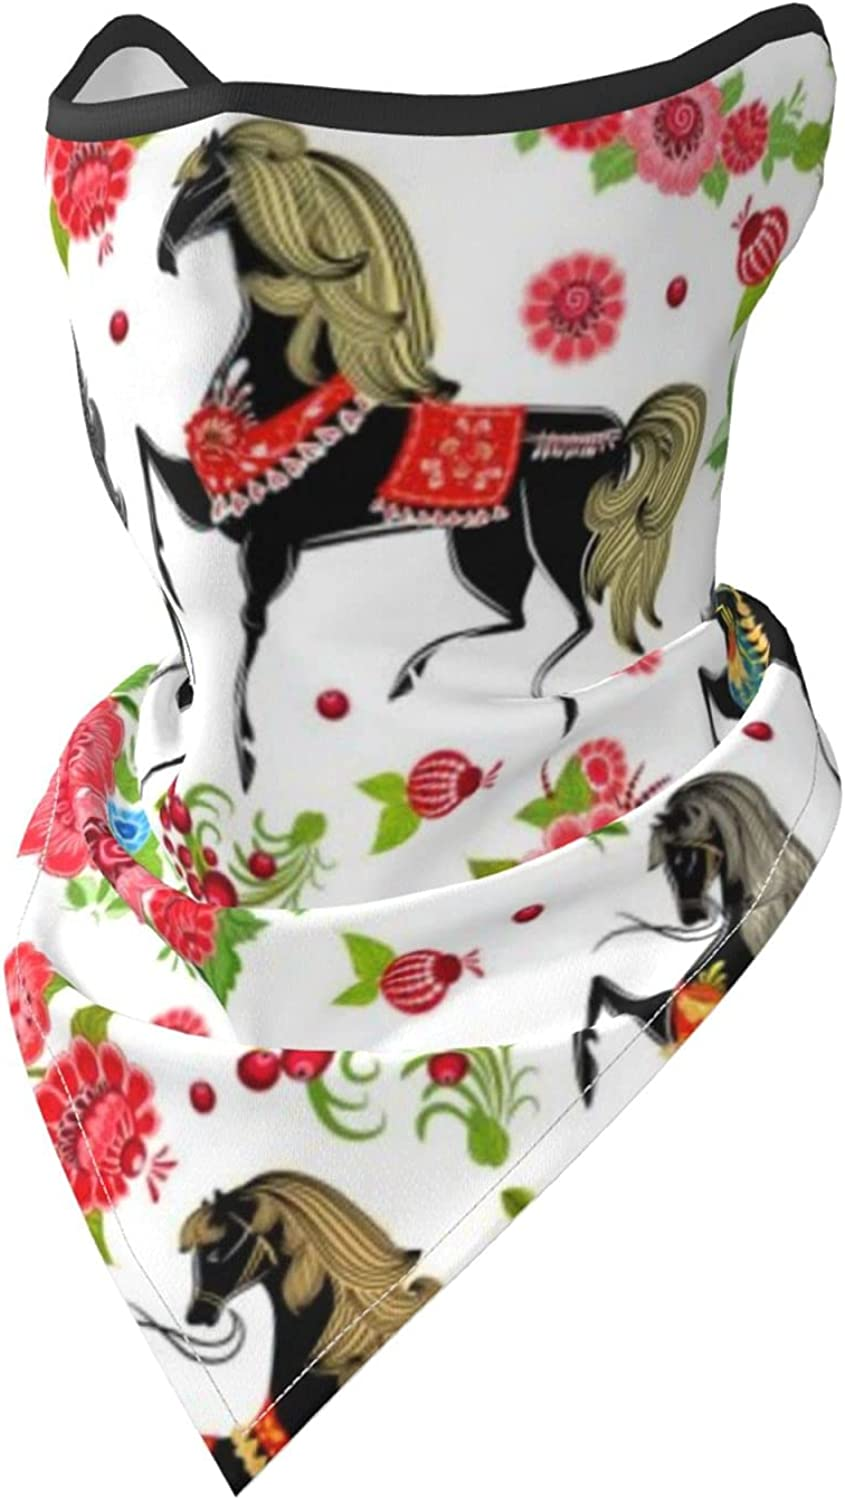 Flower Horse Print Breathable Bandana Face Mask Neck Gaiter Windproof Sports Mask Scarf Headwear for Men Women Outdoor Hiking Cycling Running Motorcycling